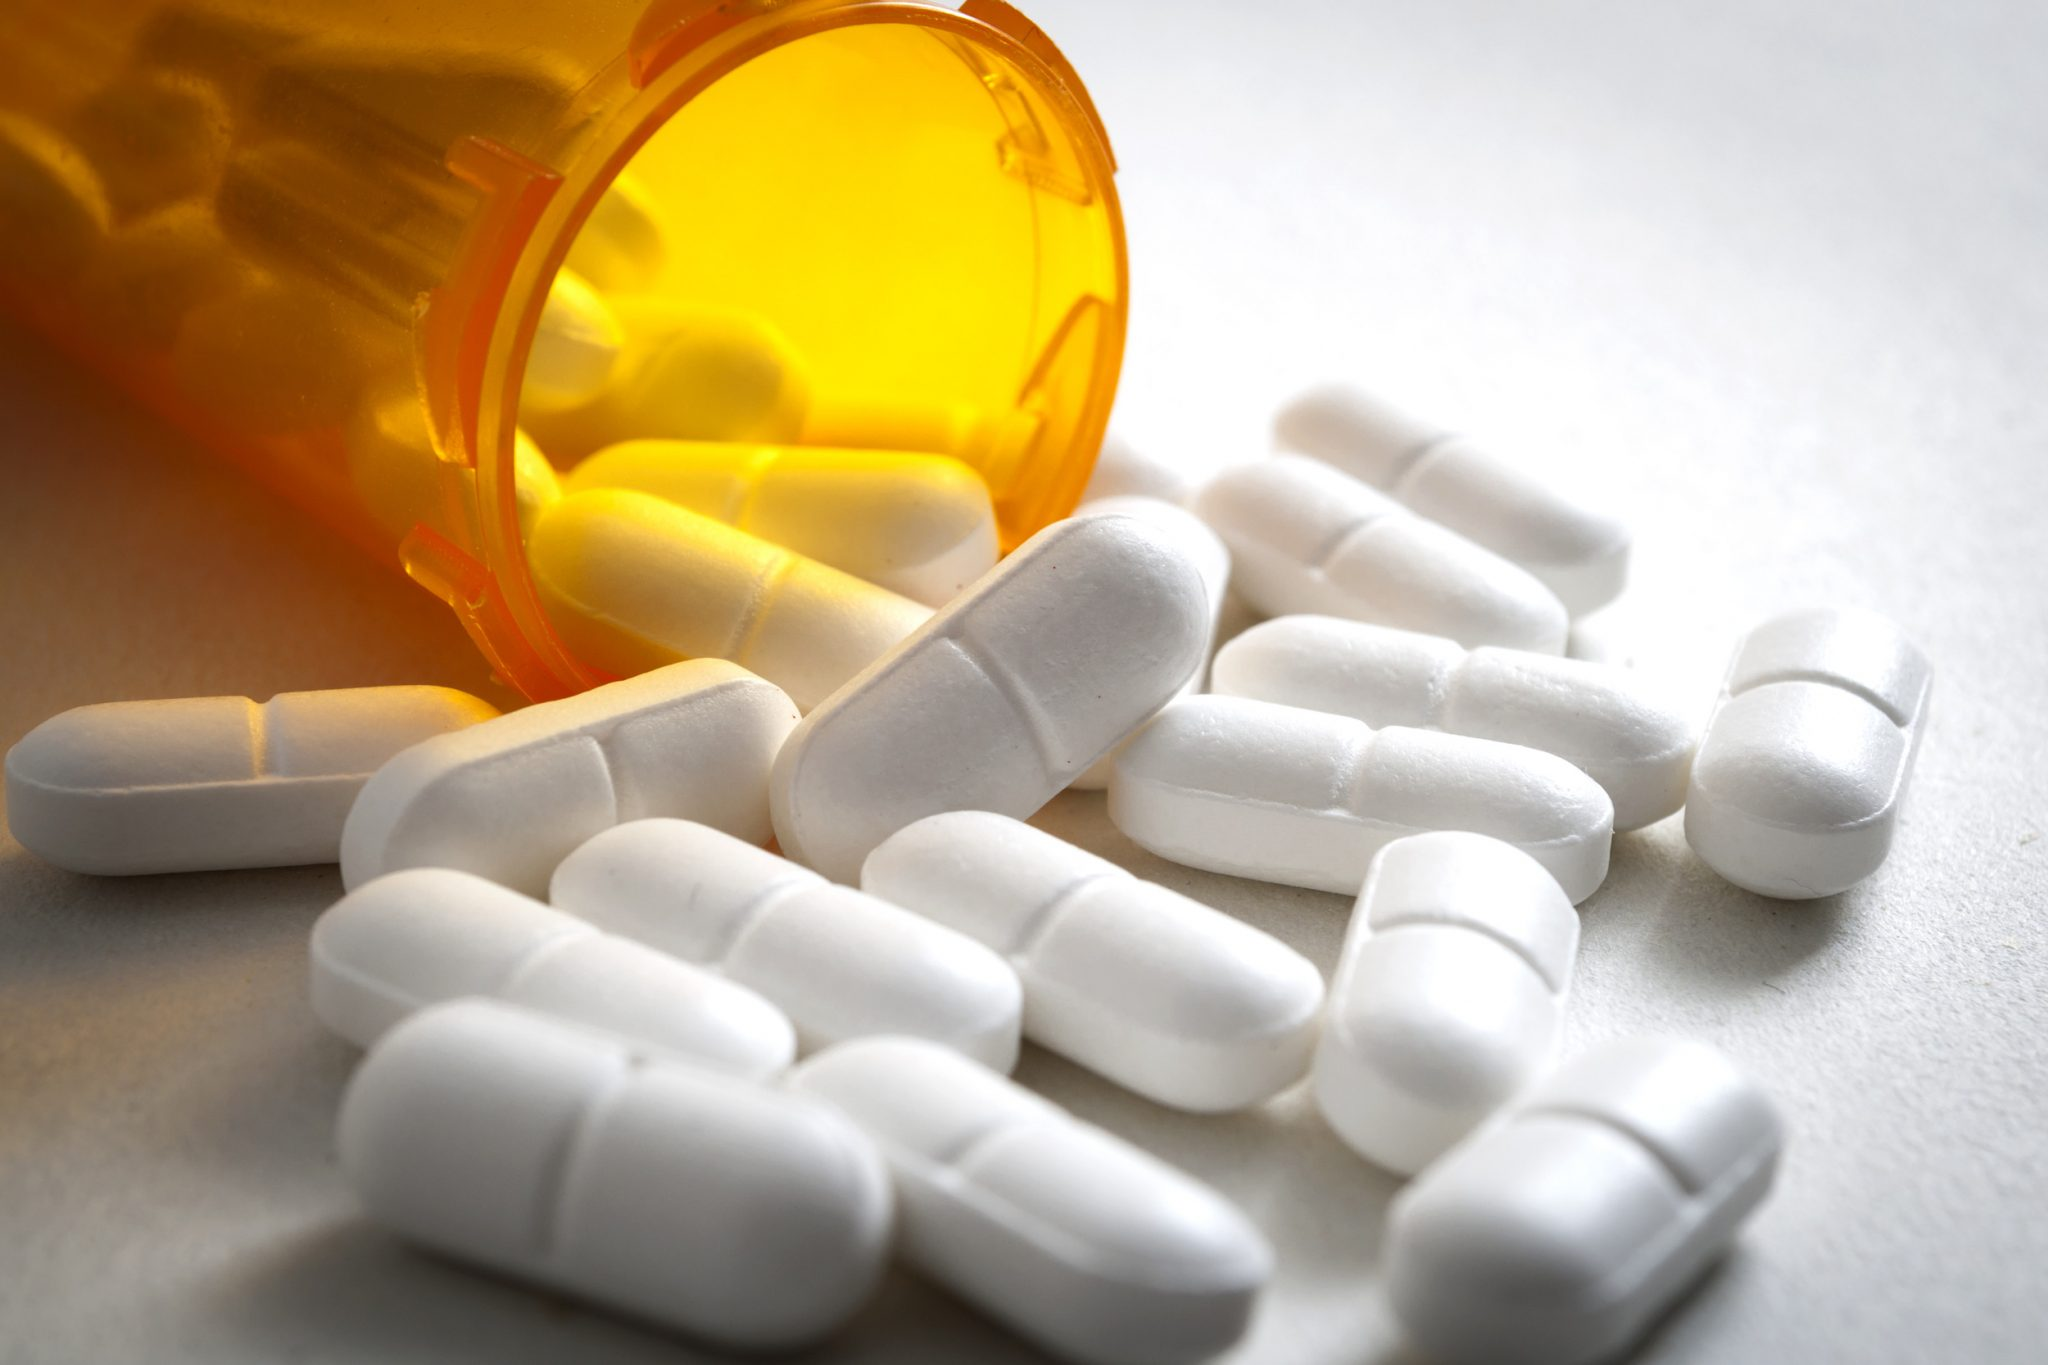 Using meds to kick drugs: A prescription can help opioid addicts on the road to recovery